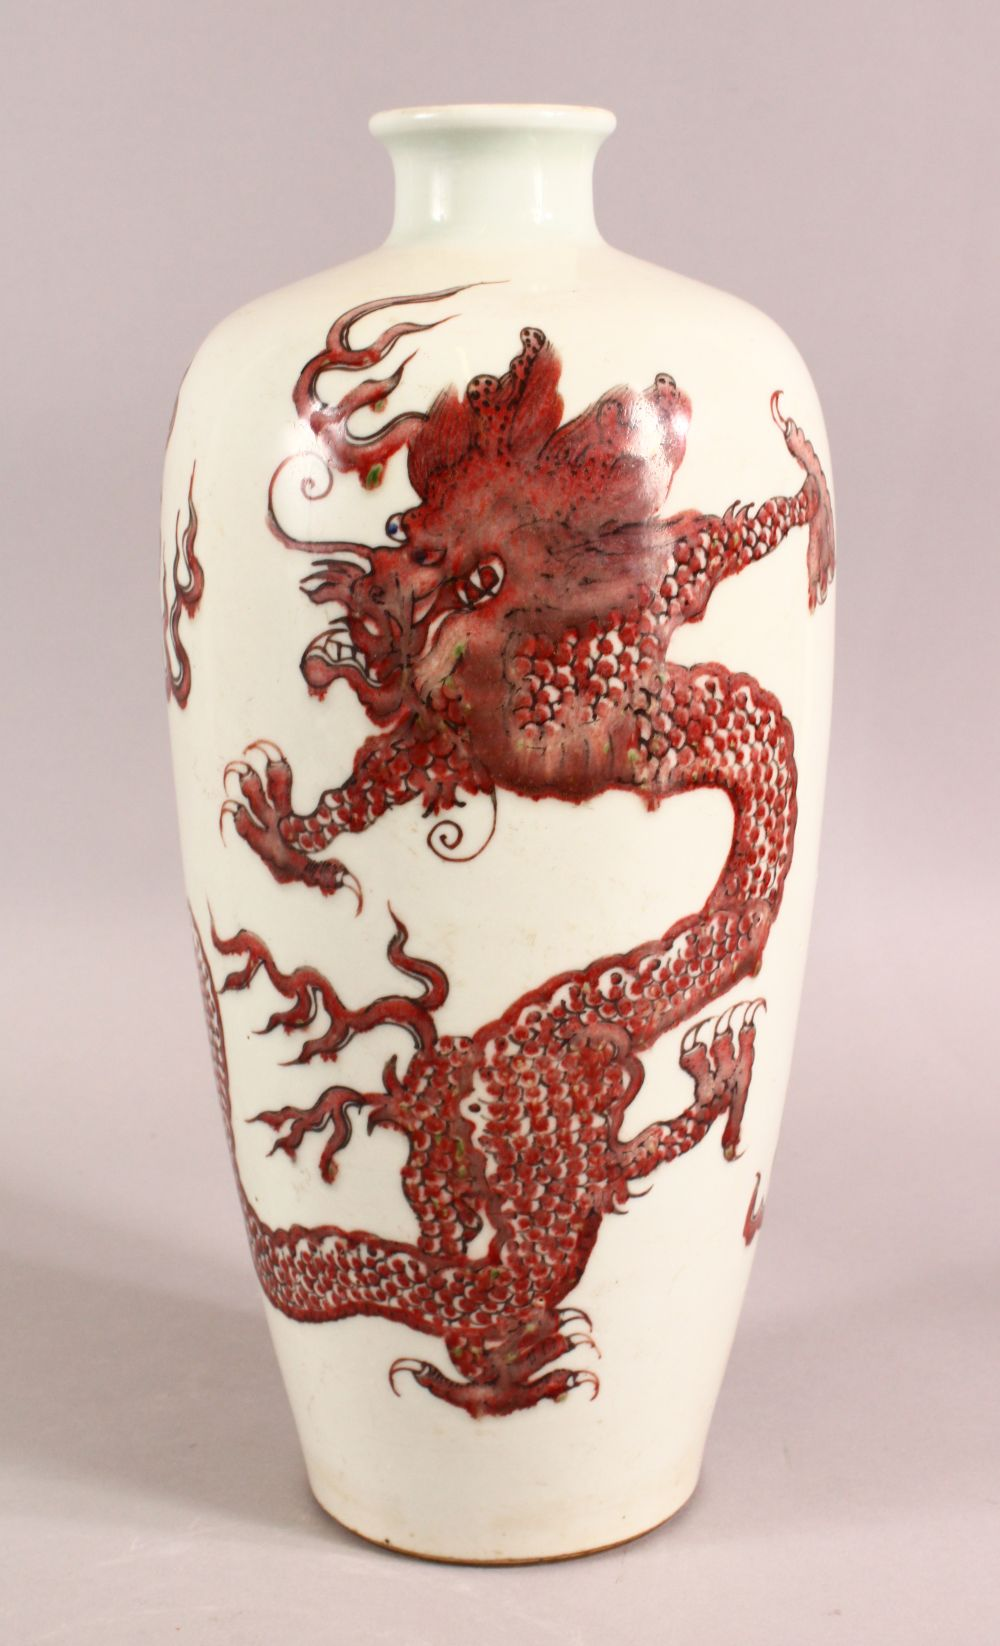 A CHINESE IRON RED DRAGON VASE, the body painted with two dragons and the pearl of wisdom, 33cm